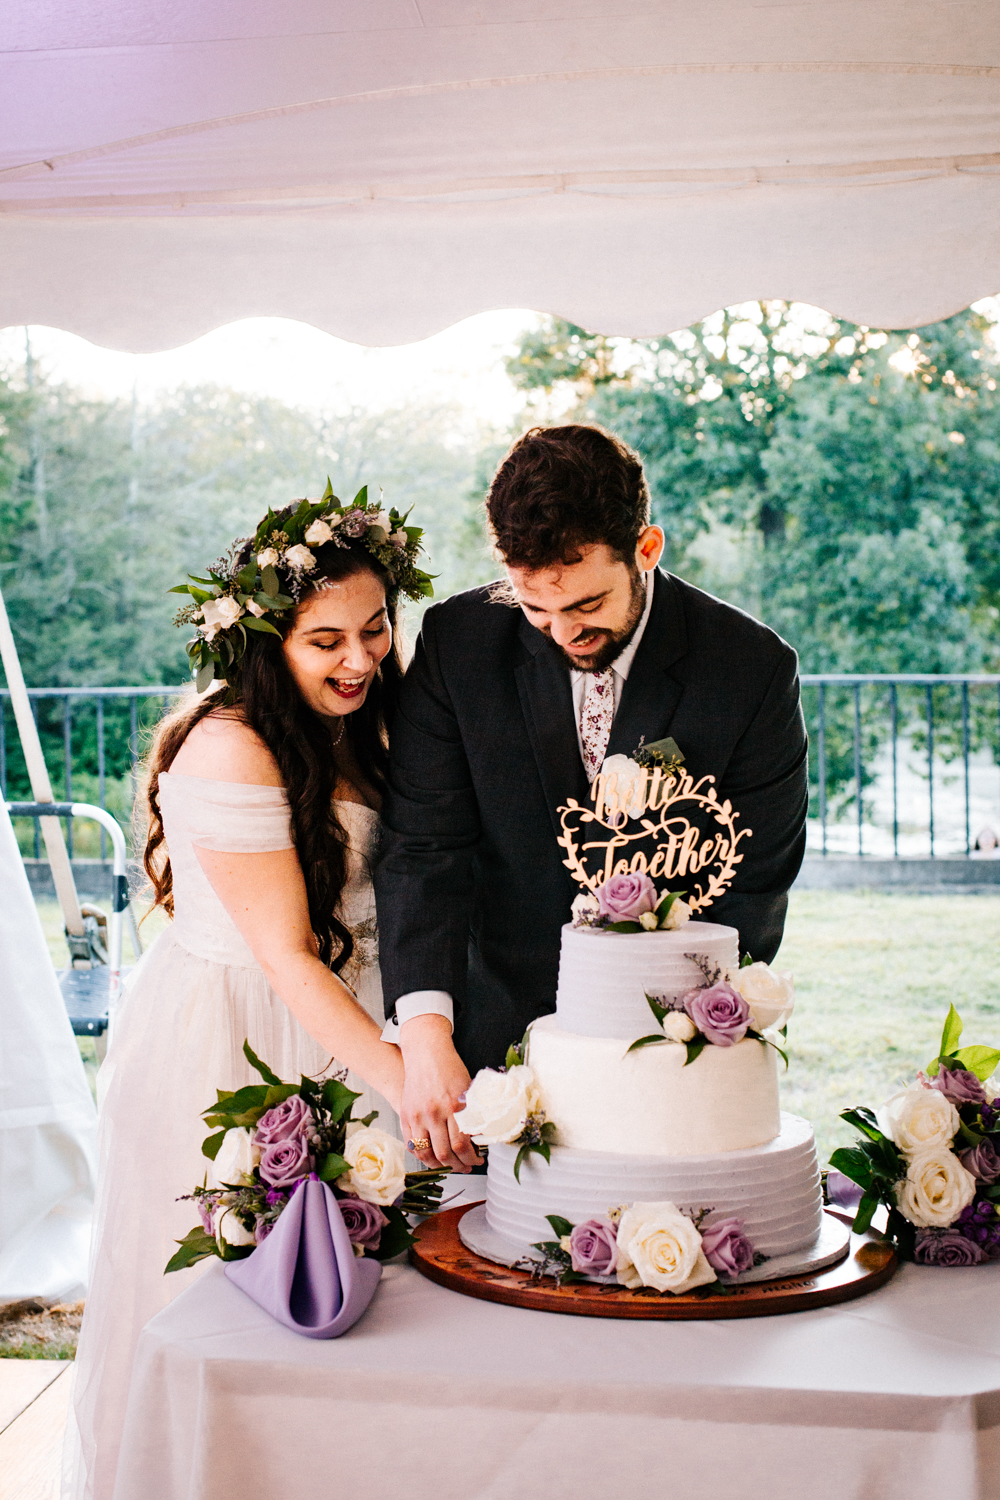 cake-cutting-pomfret-center-ct-gwyn-careg-connecticut-new-england-photography-wedding.jpg